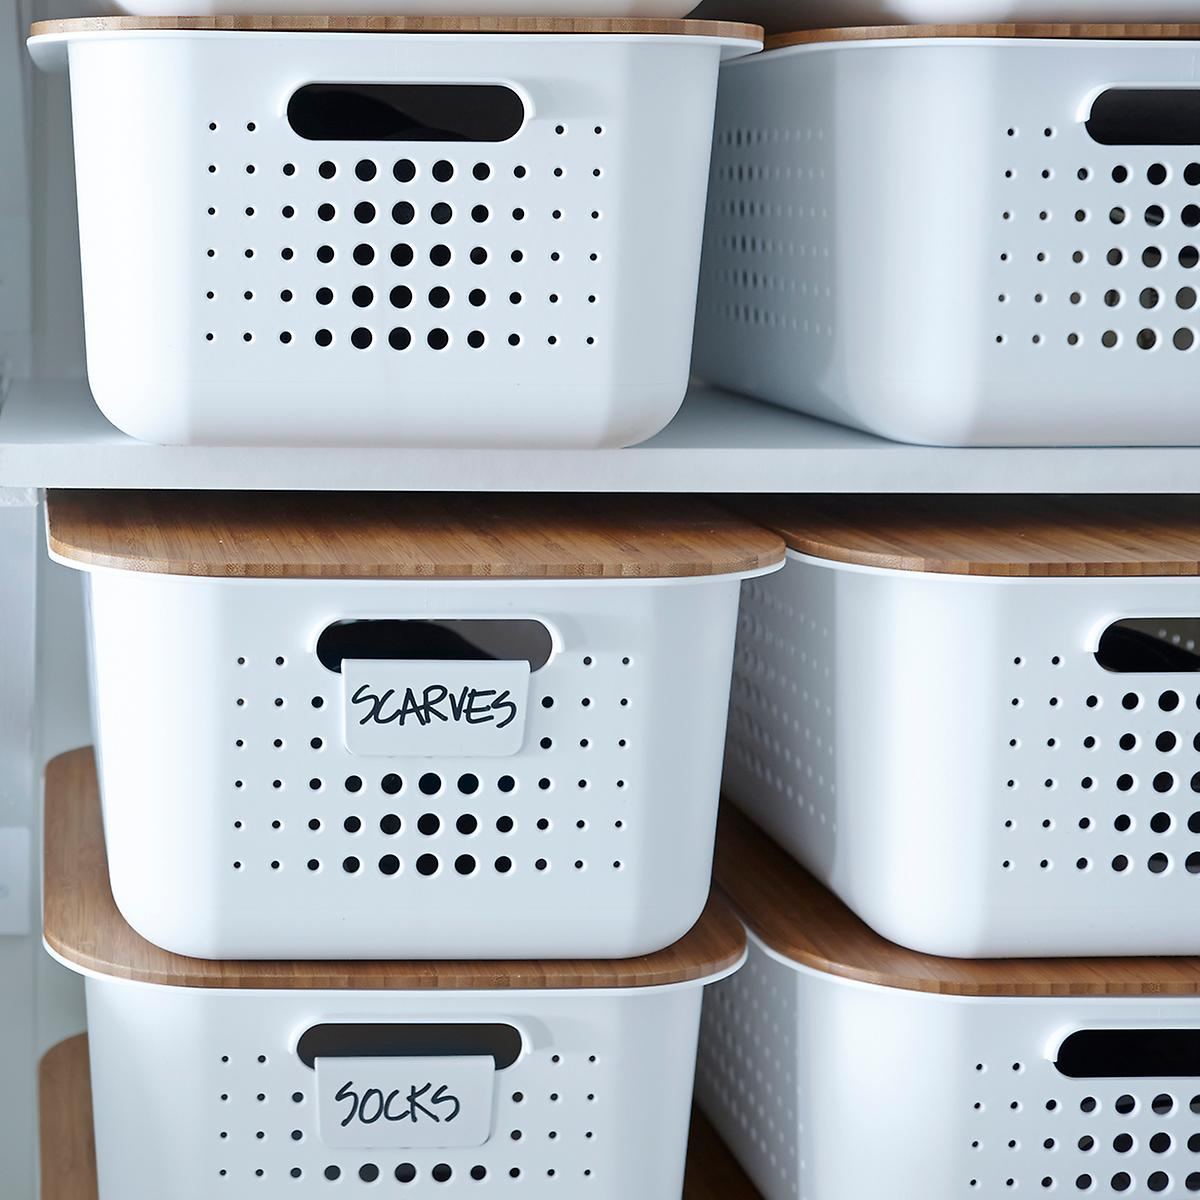 Storage Baskets With Handles on the Shelves